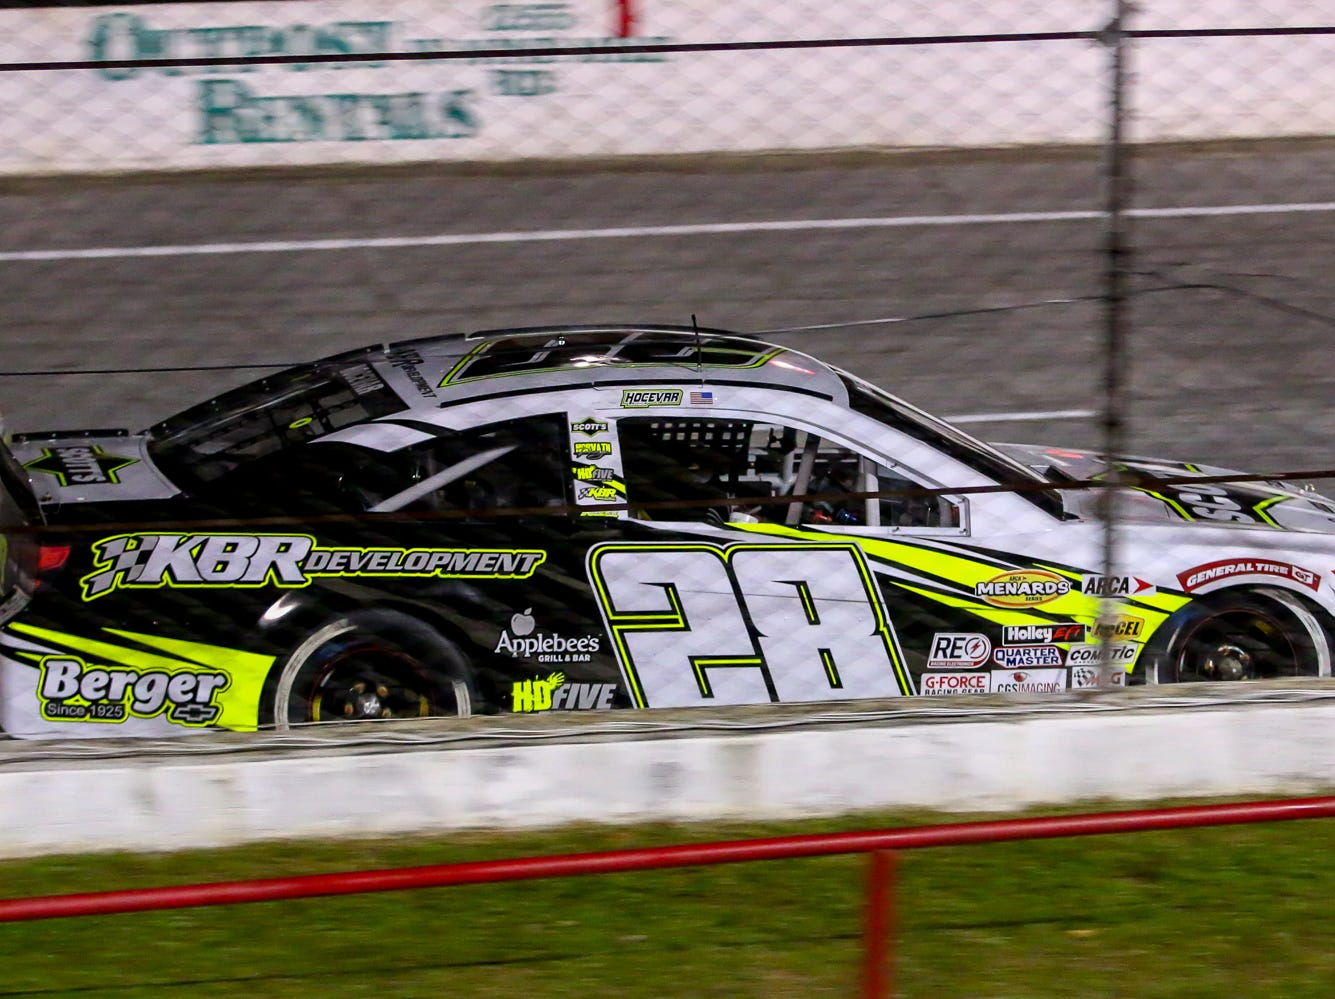 Caron Hocevar (28) speeds past the grandstands during the ARCA Pensacola 200 race presented by Inspectra Thermal Solutions on Saturday, March 9, 2019, at Five Flags Speedway. Michael Self, of Salt Lake City, won the race.